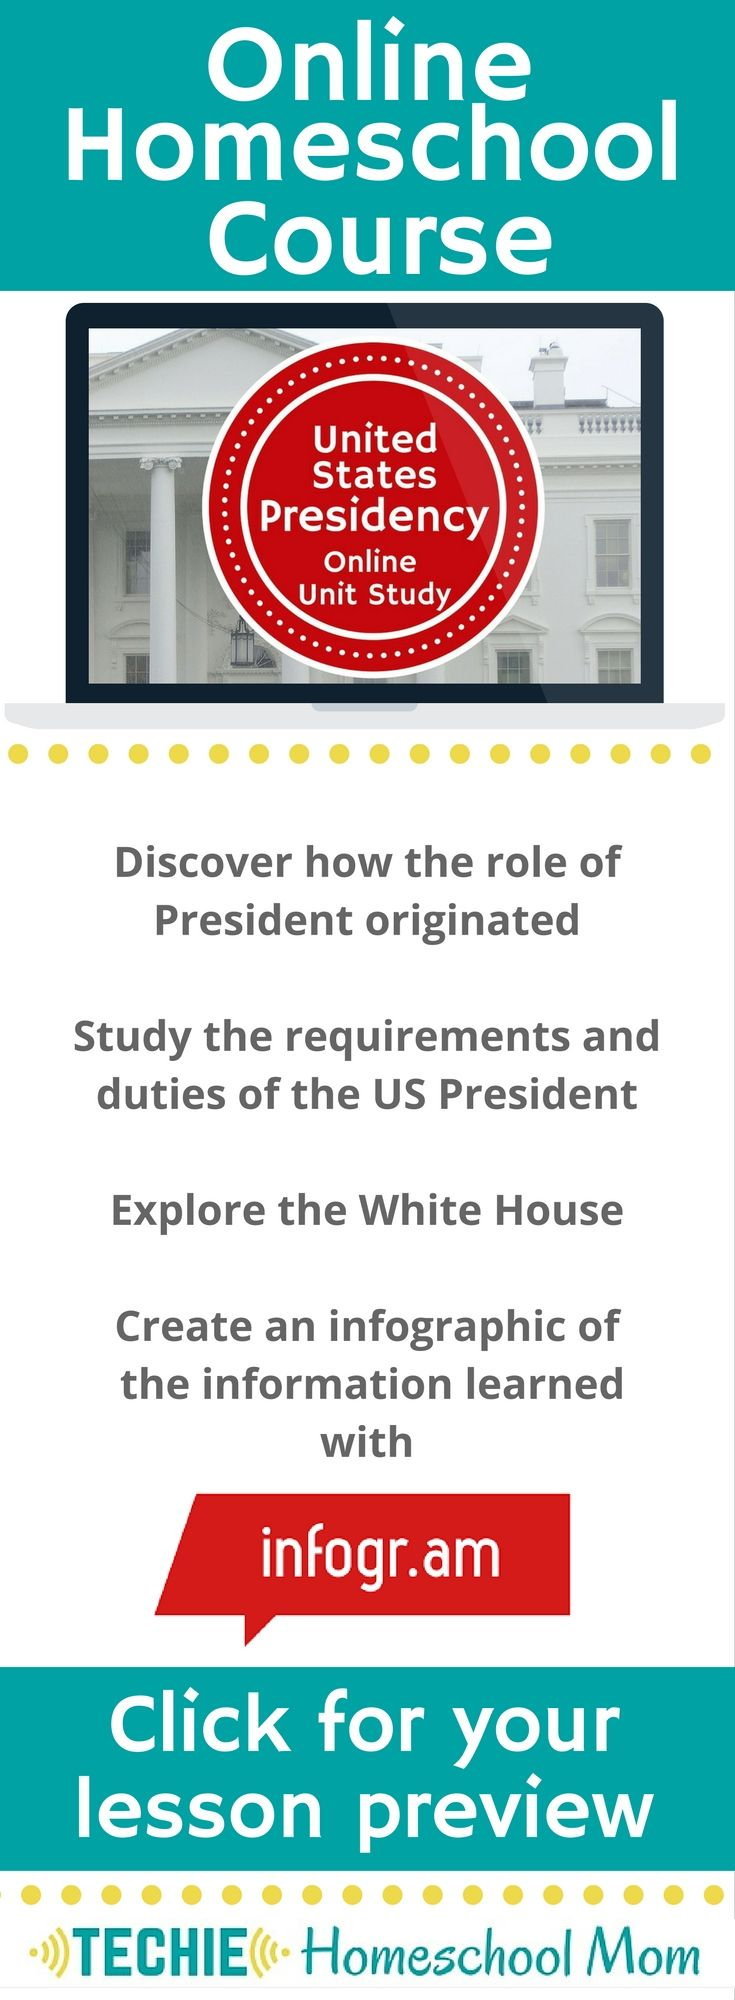 Try the United States Presidency Online Unit Study. This online homeschool…